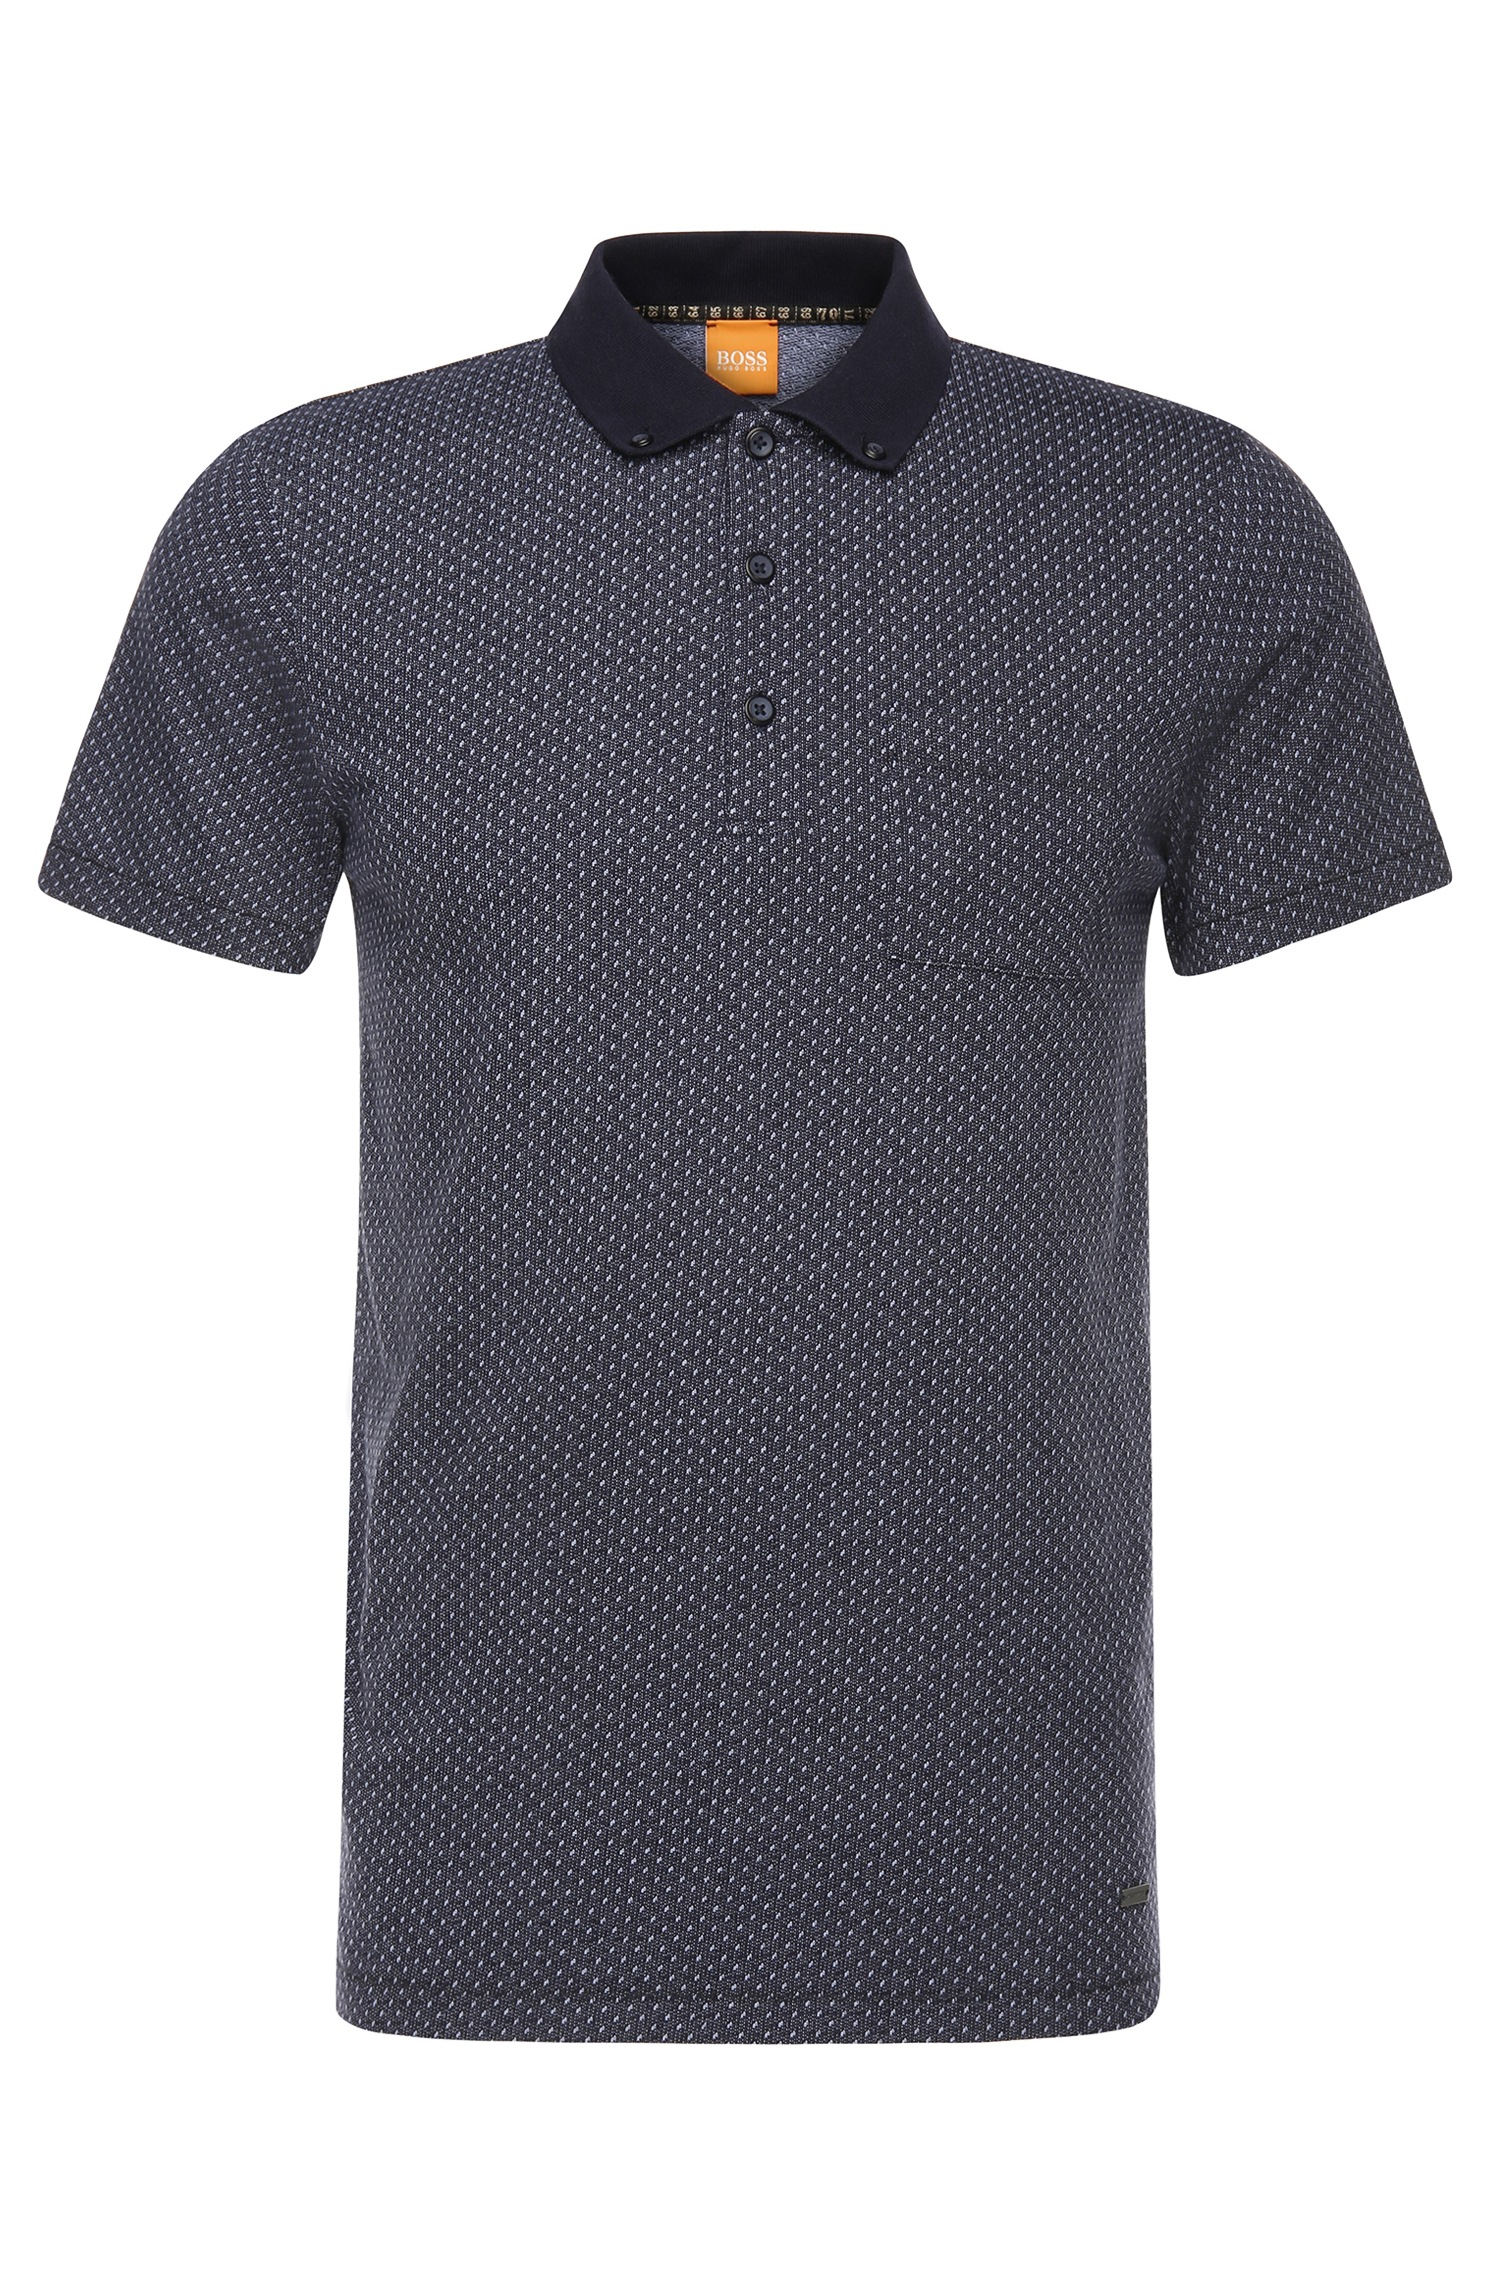 Lyst boss orange slim fit polo shirt in cotton with for Cotton and elastane t shirts